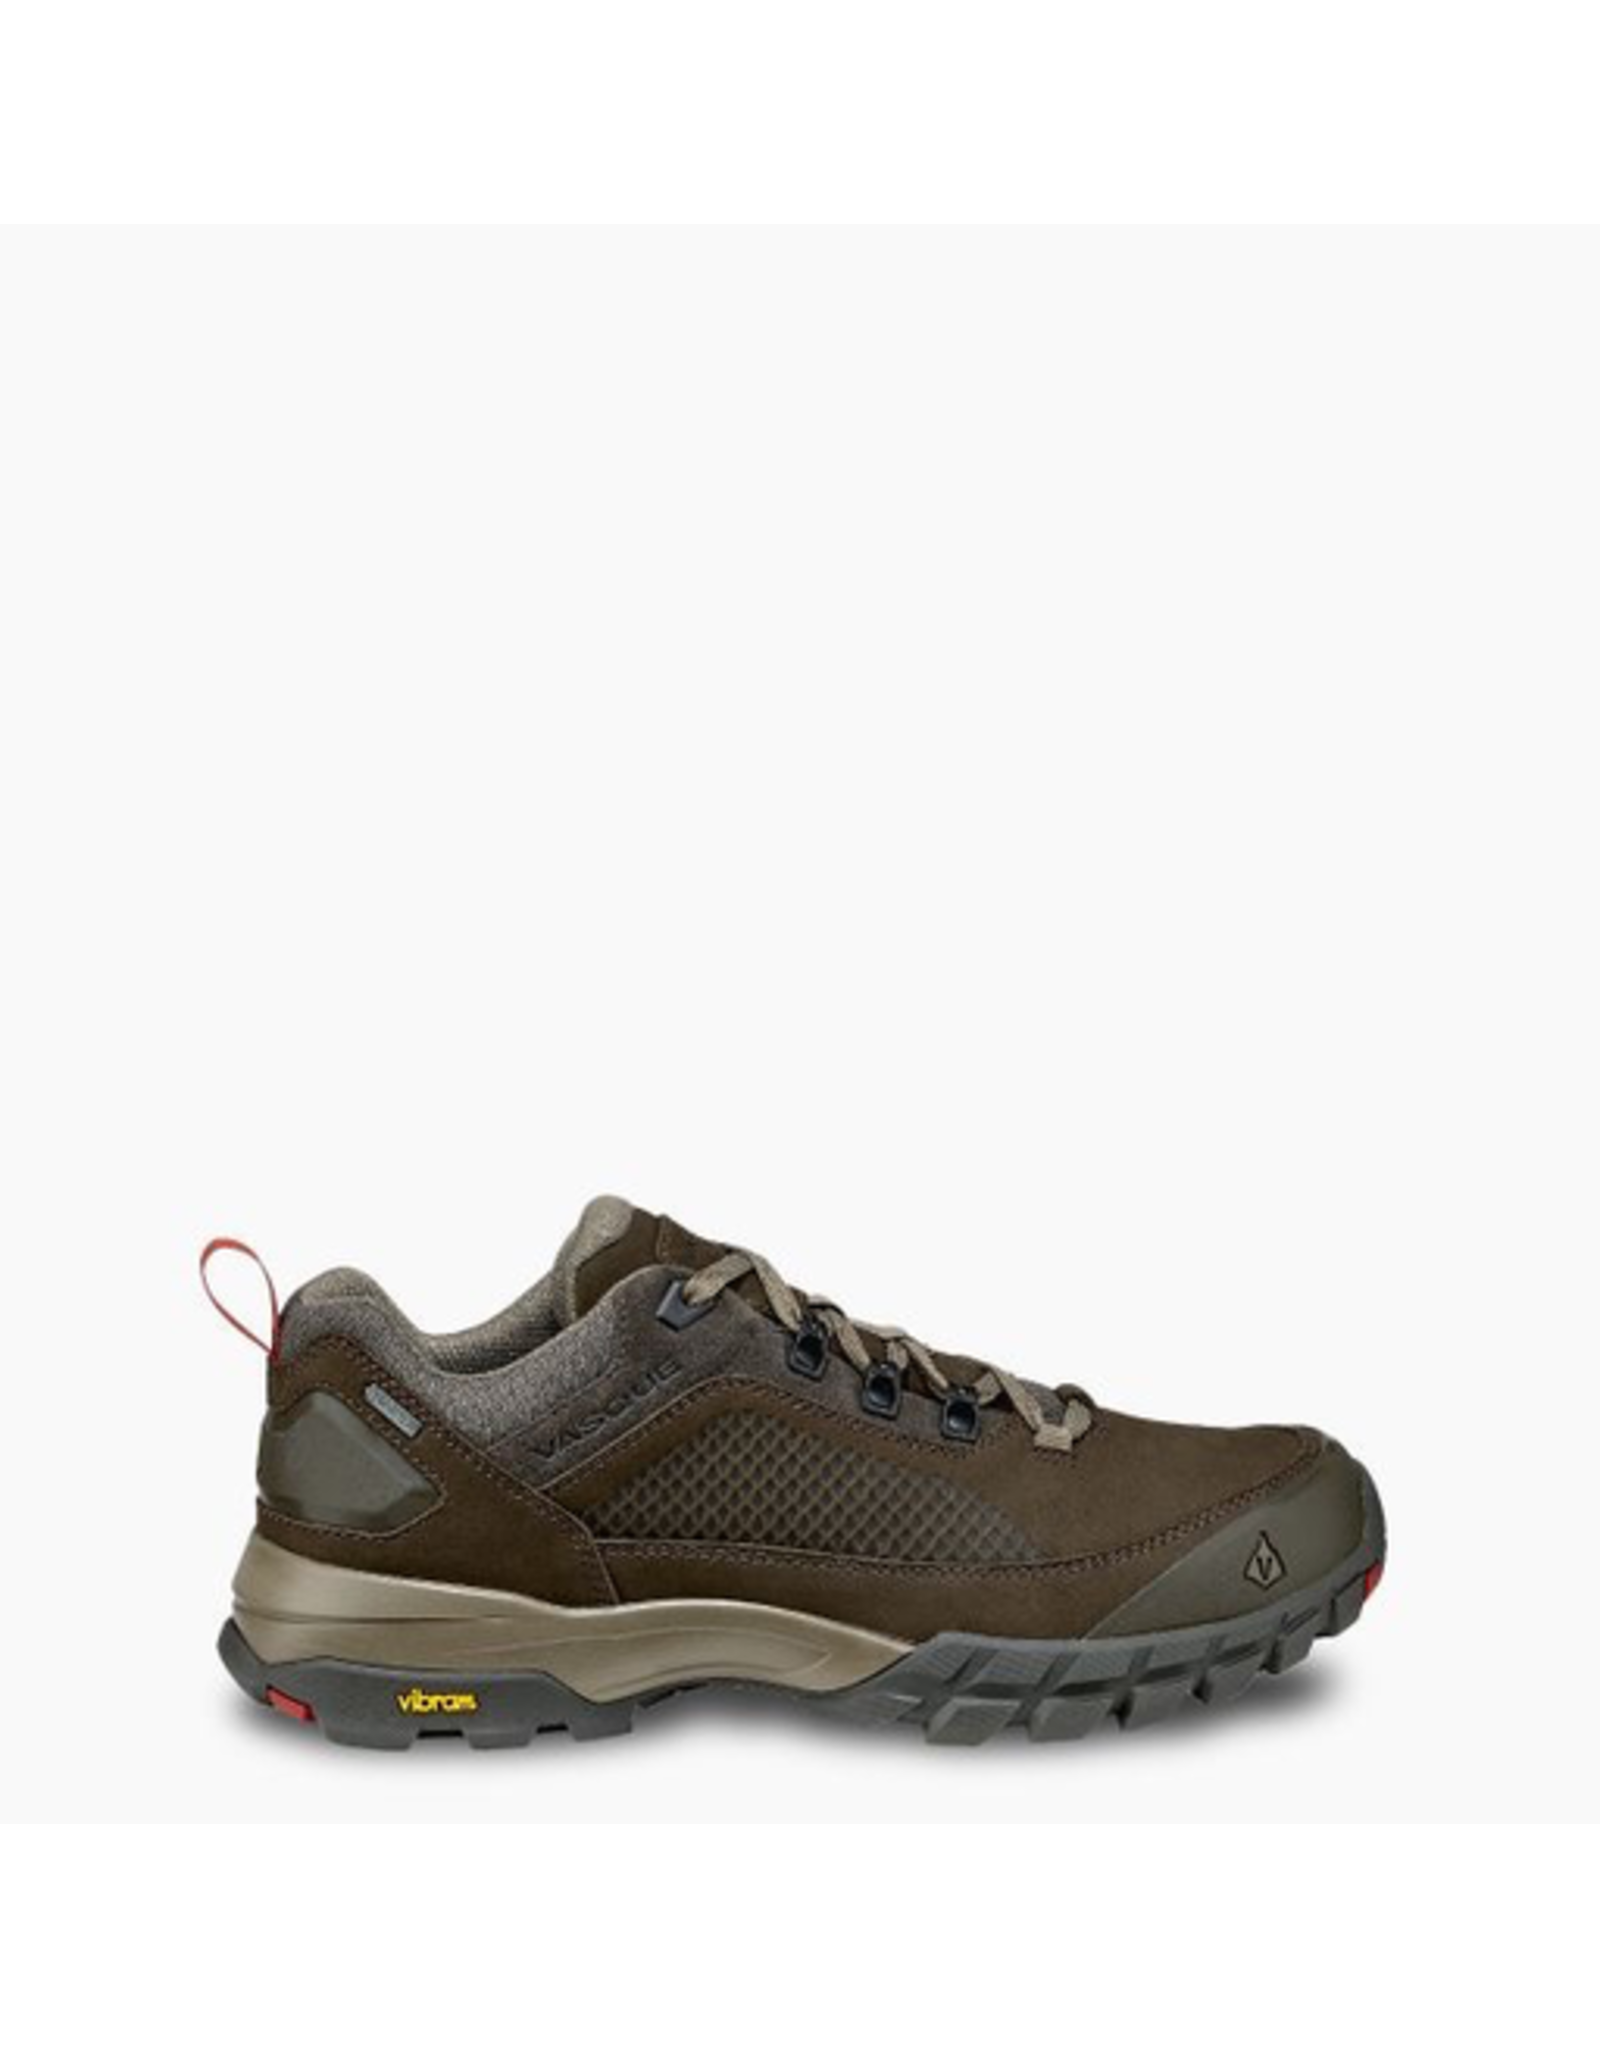 Vasque Vasque Men's Talus XT Low GTX